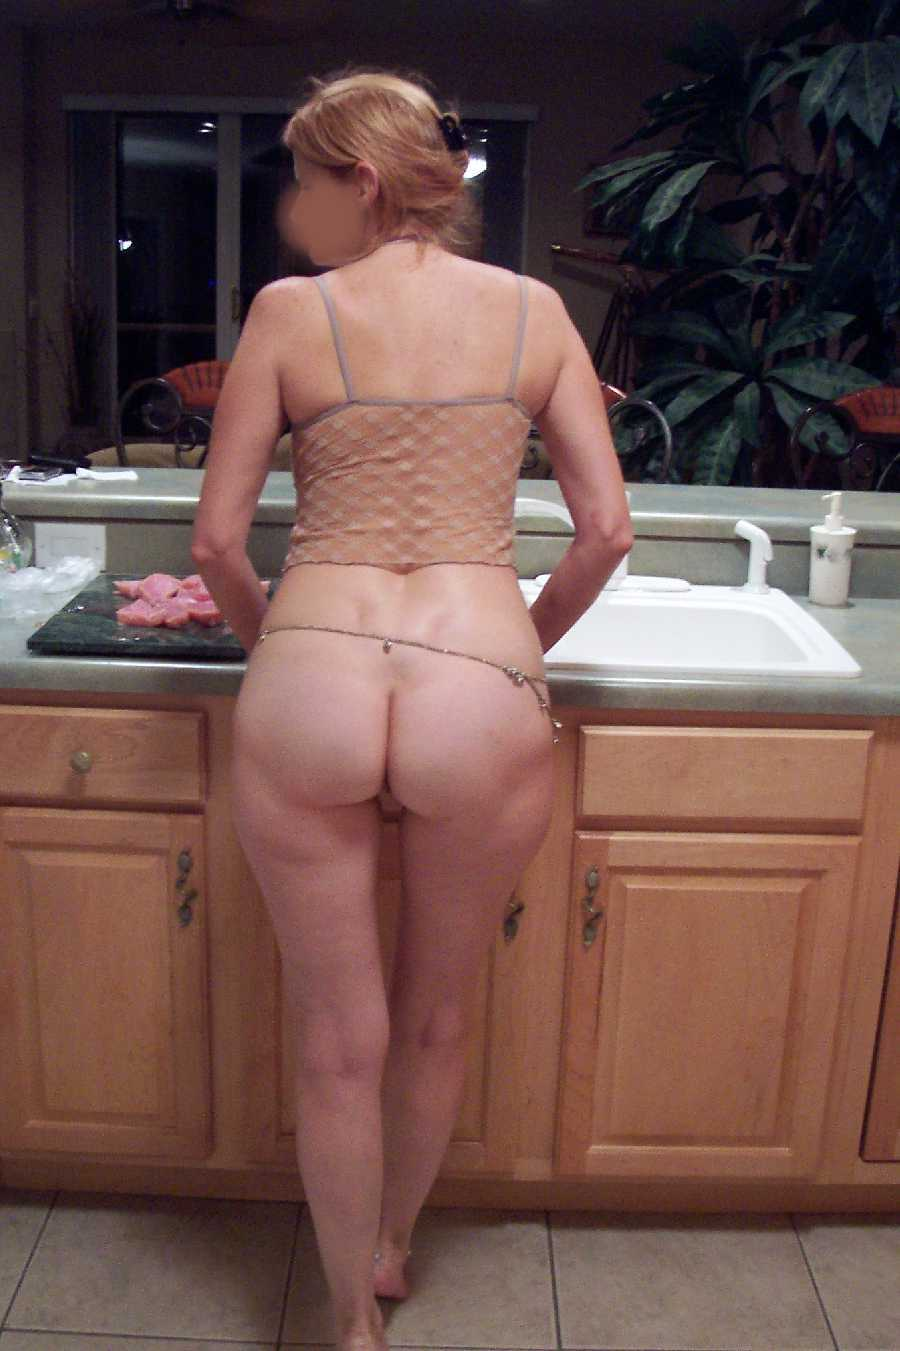 Wife naked in the kitchen